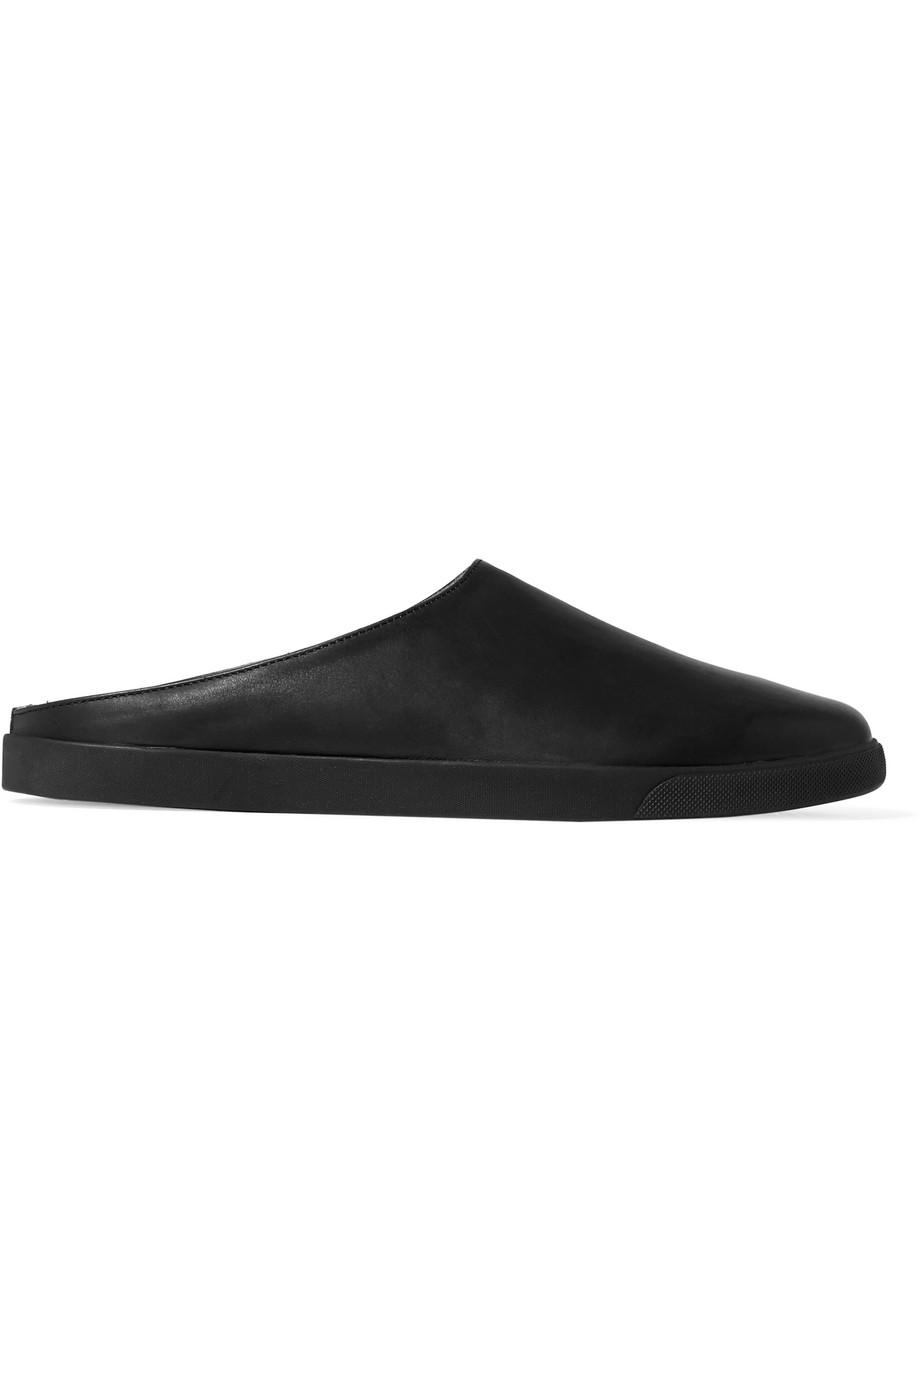 bfb8ac89b07 Lyst - The Row Eric Leather Slippers in Black